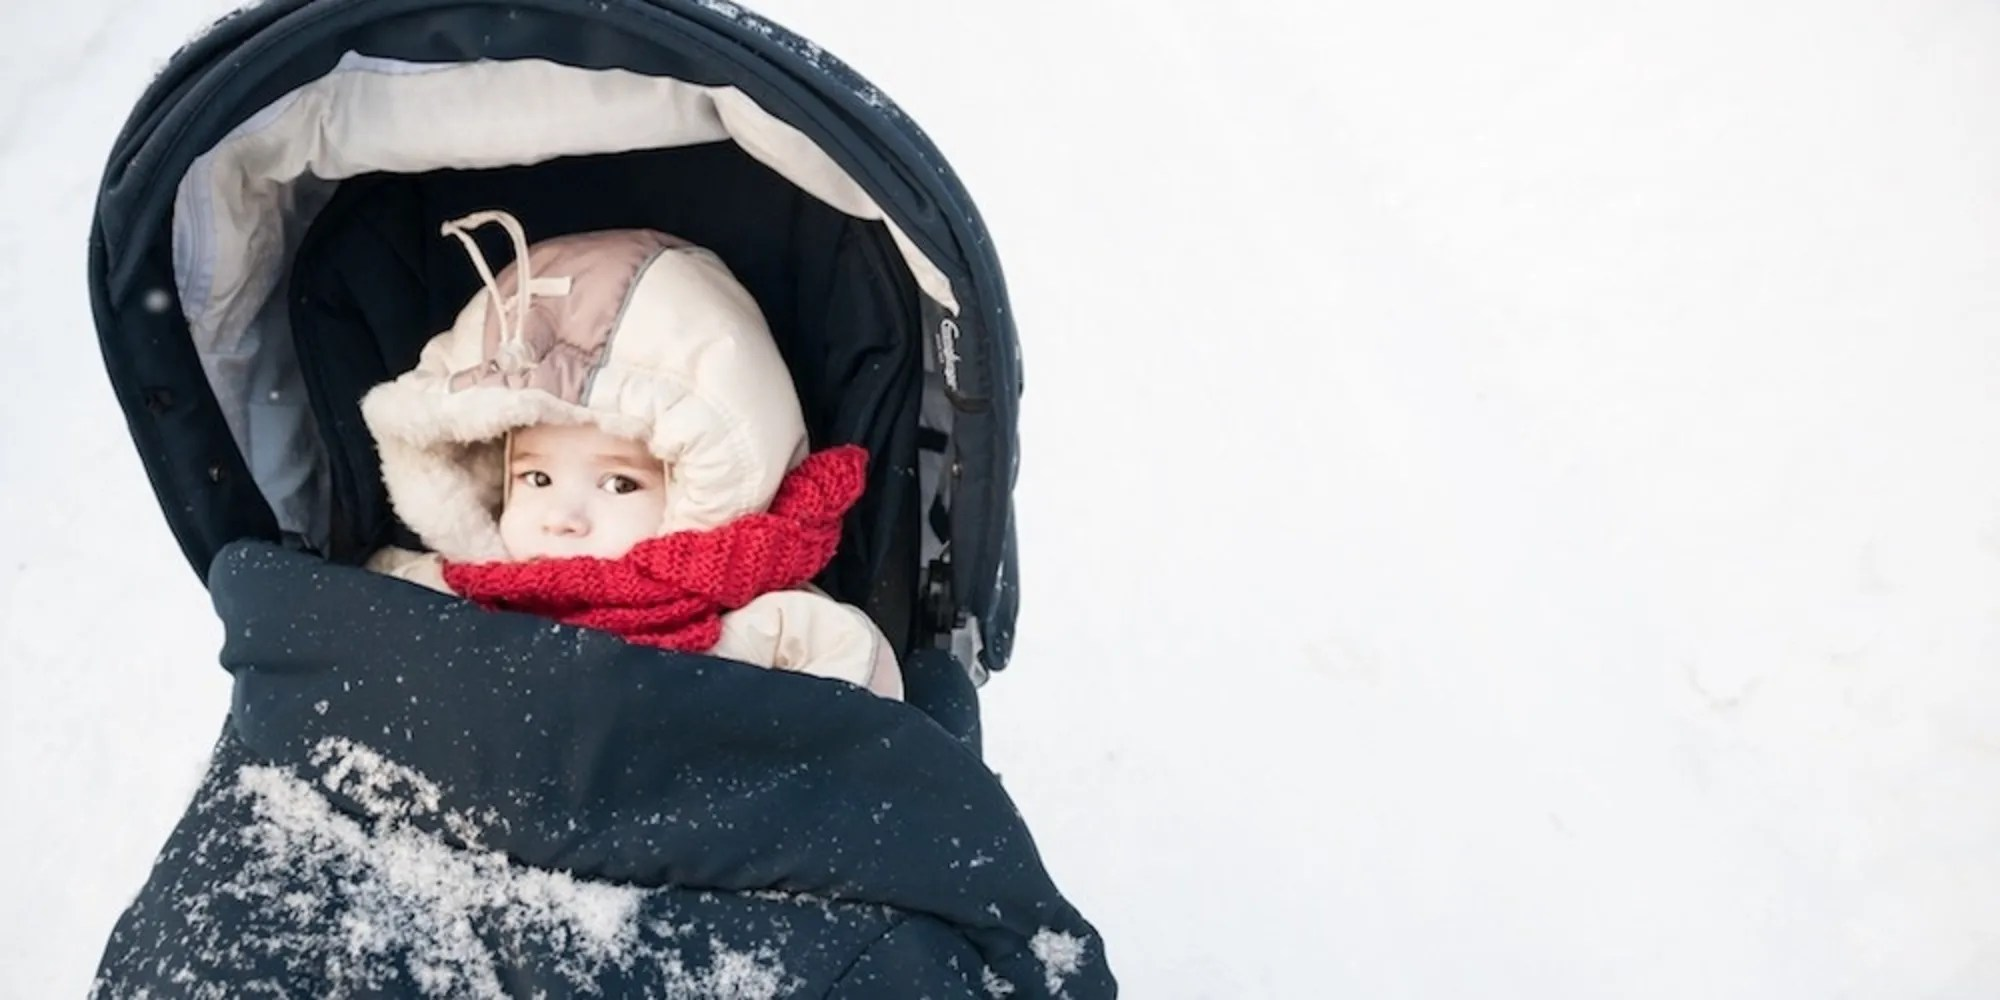 236ad36b0 A PSA On Car Seat Safety In Cold Weather